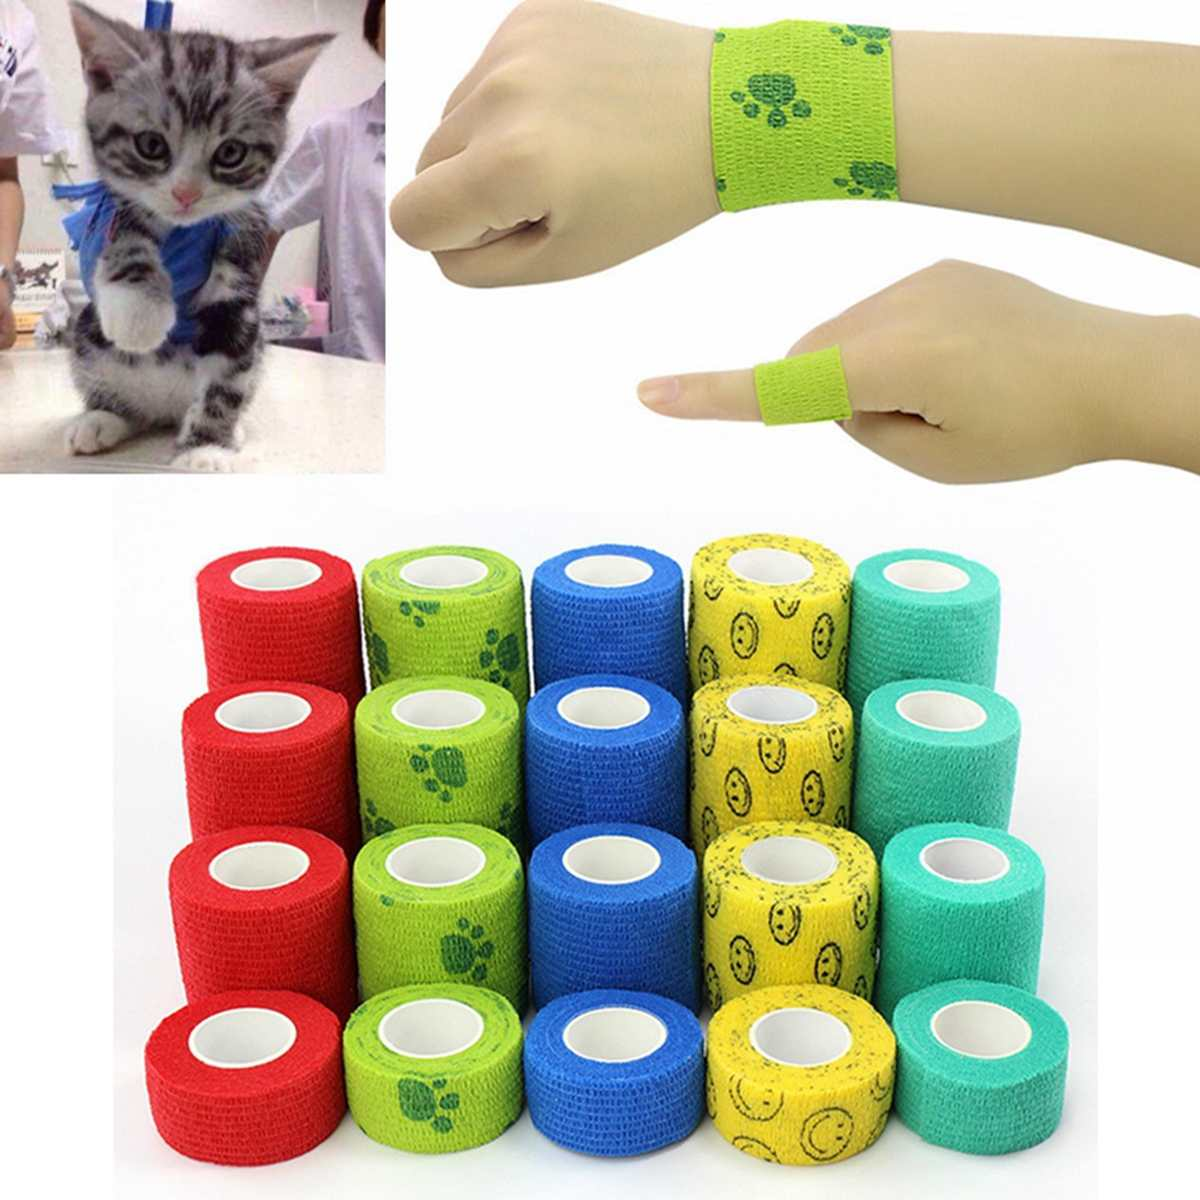 1 Roll 16 Colors Flexible Self Adherent Cohesive Pet Cat Bandage Medical Elastic Dog Bandage Vet Tape Wraps 4 Sizes Waterproof